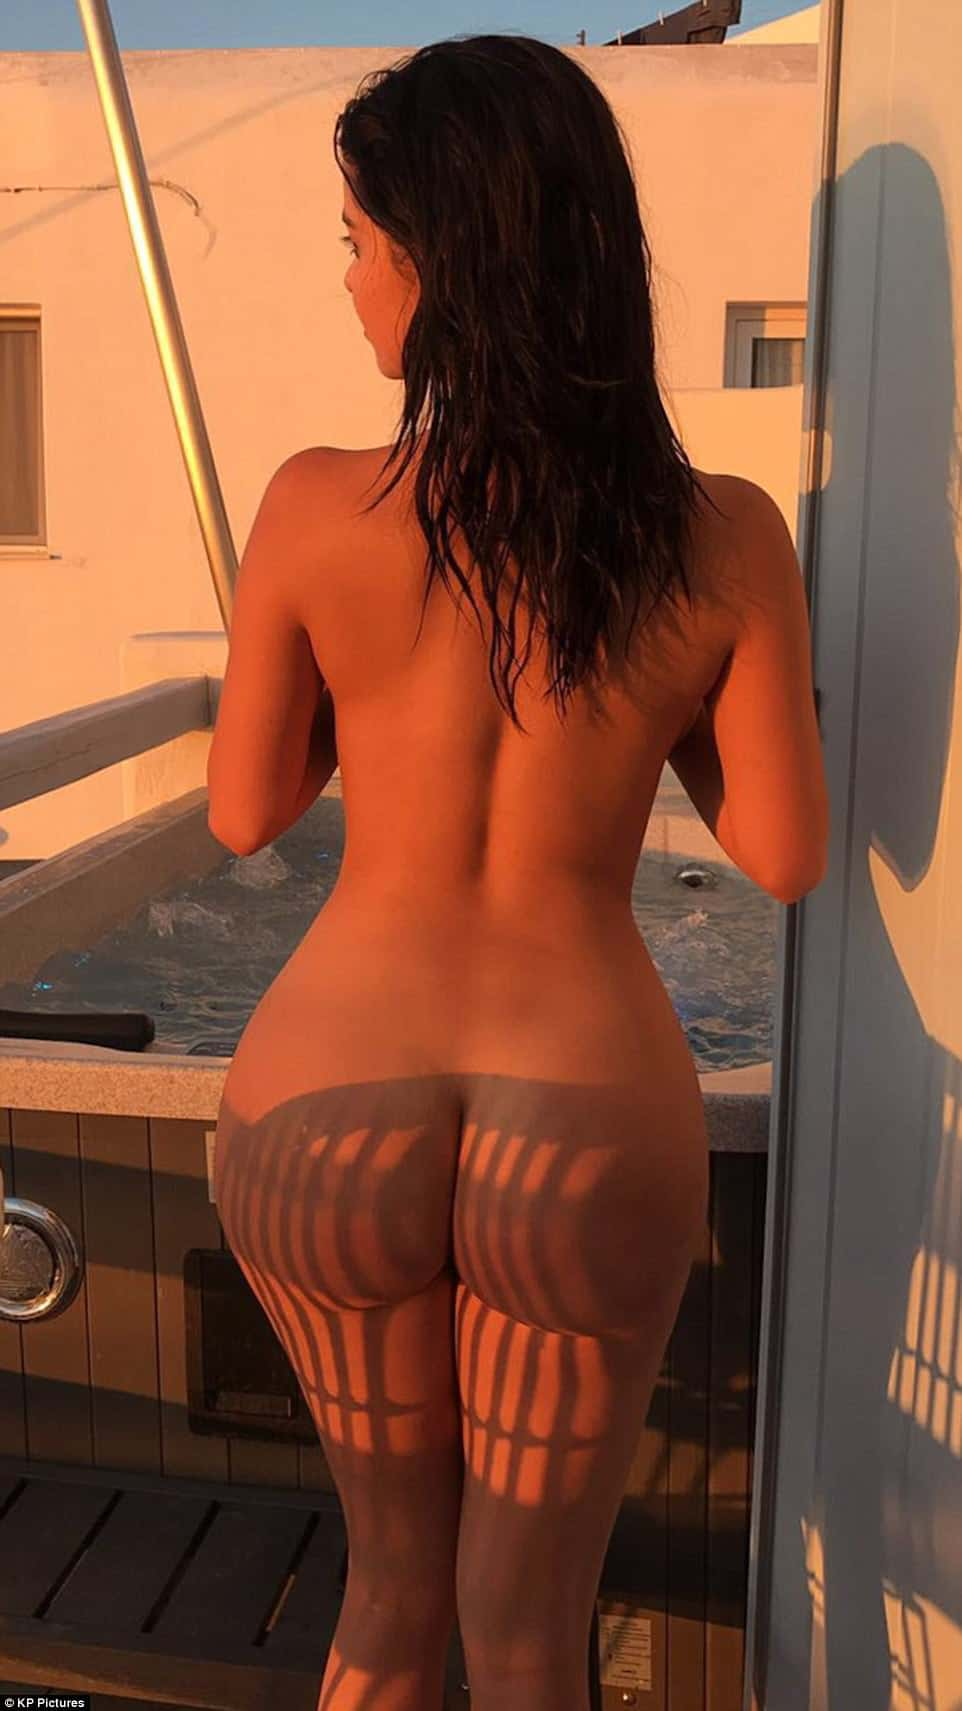 Naked canadian girls pictures